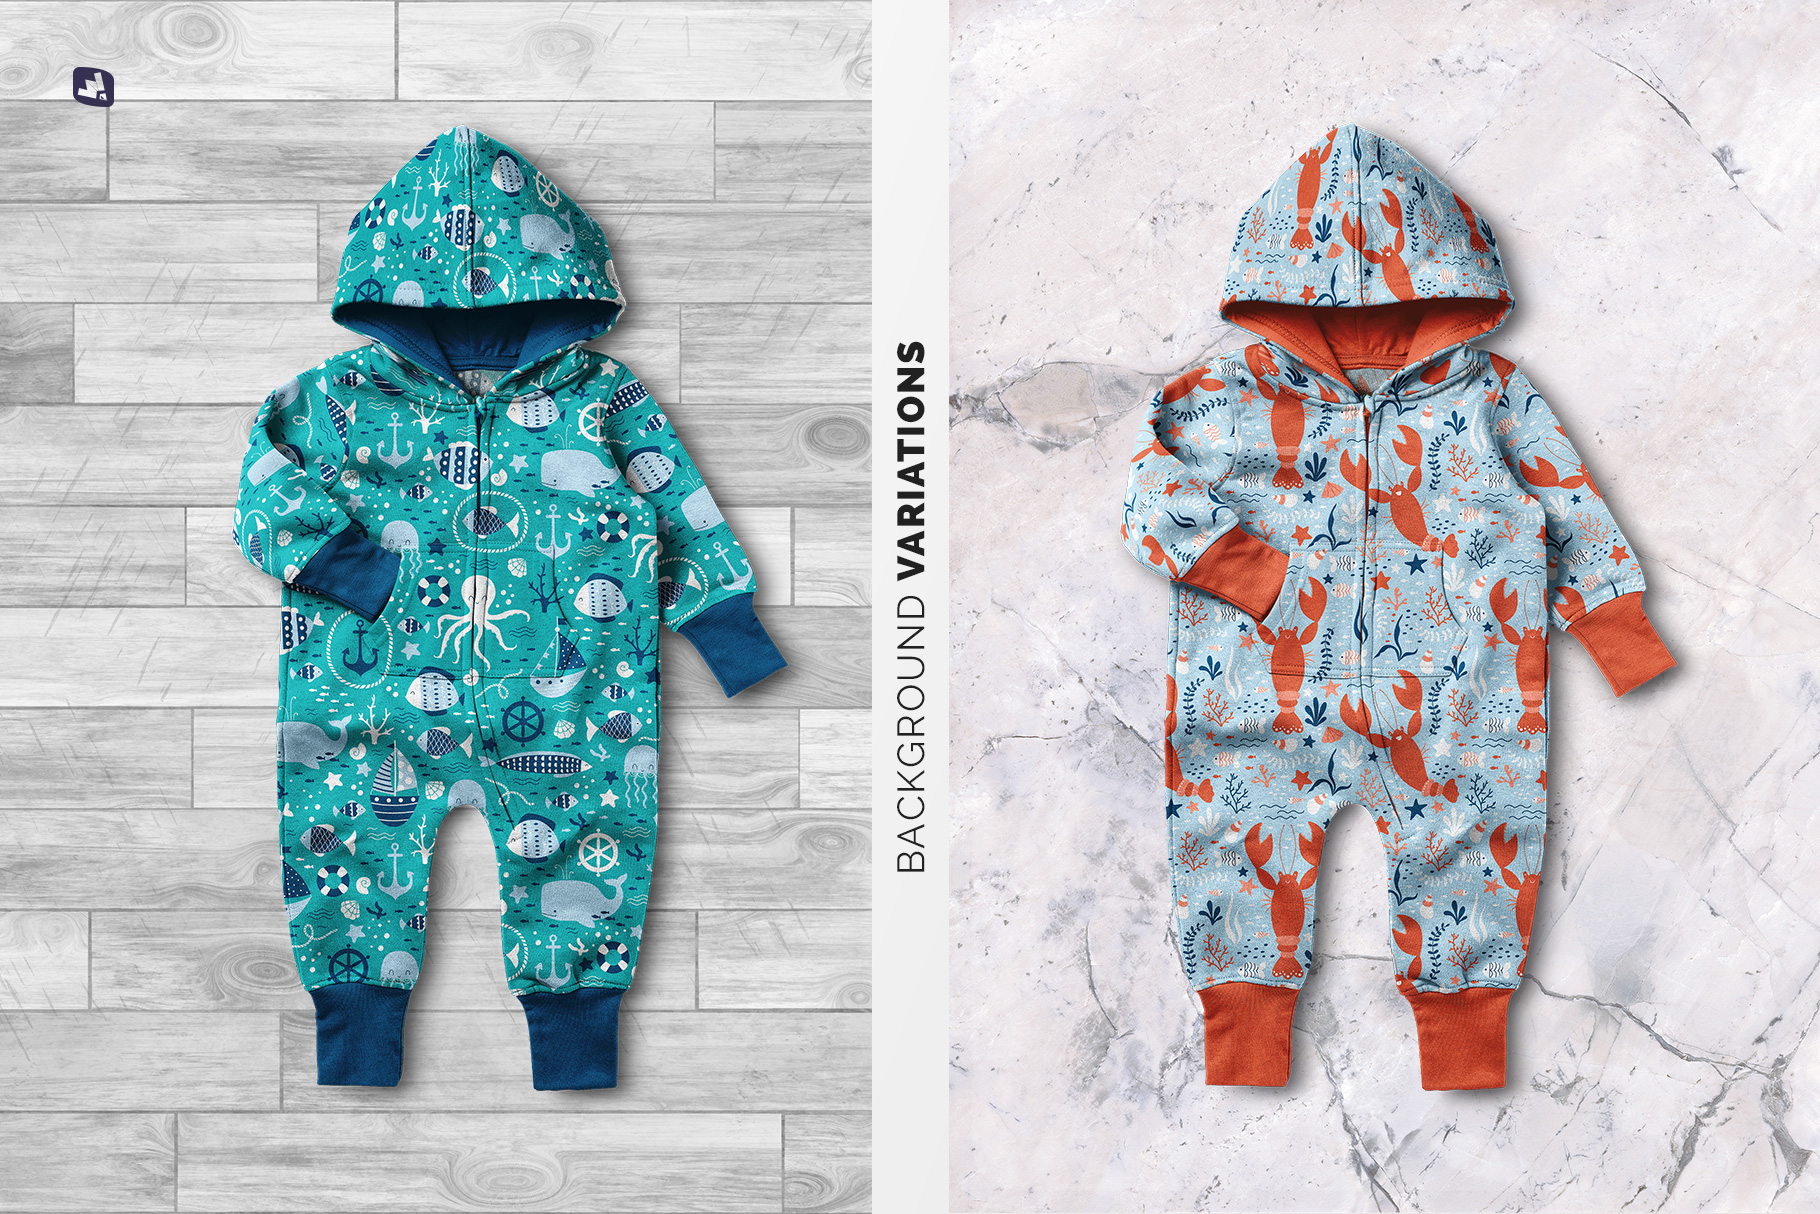 background options of the baby hoodie jumpsuit mockup